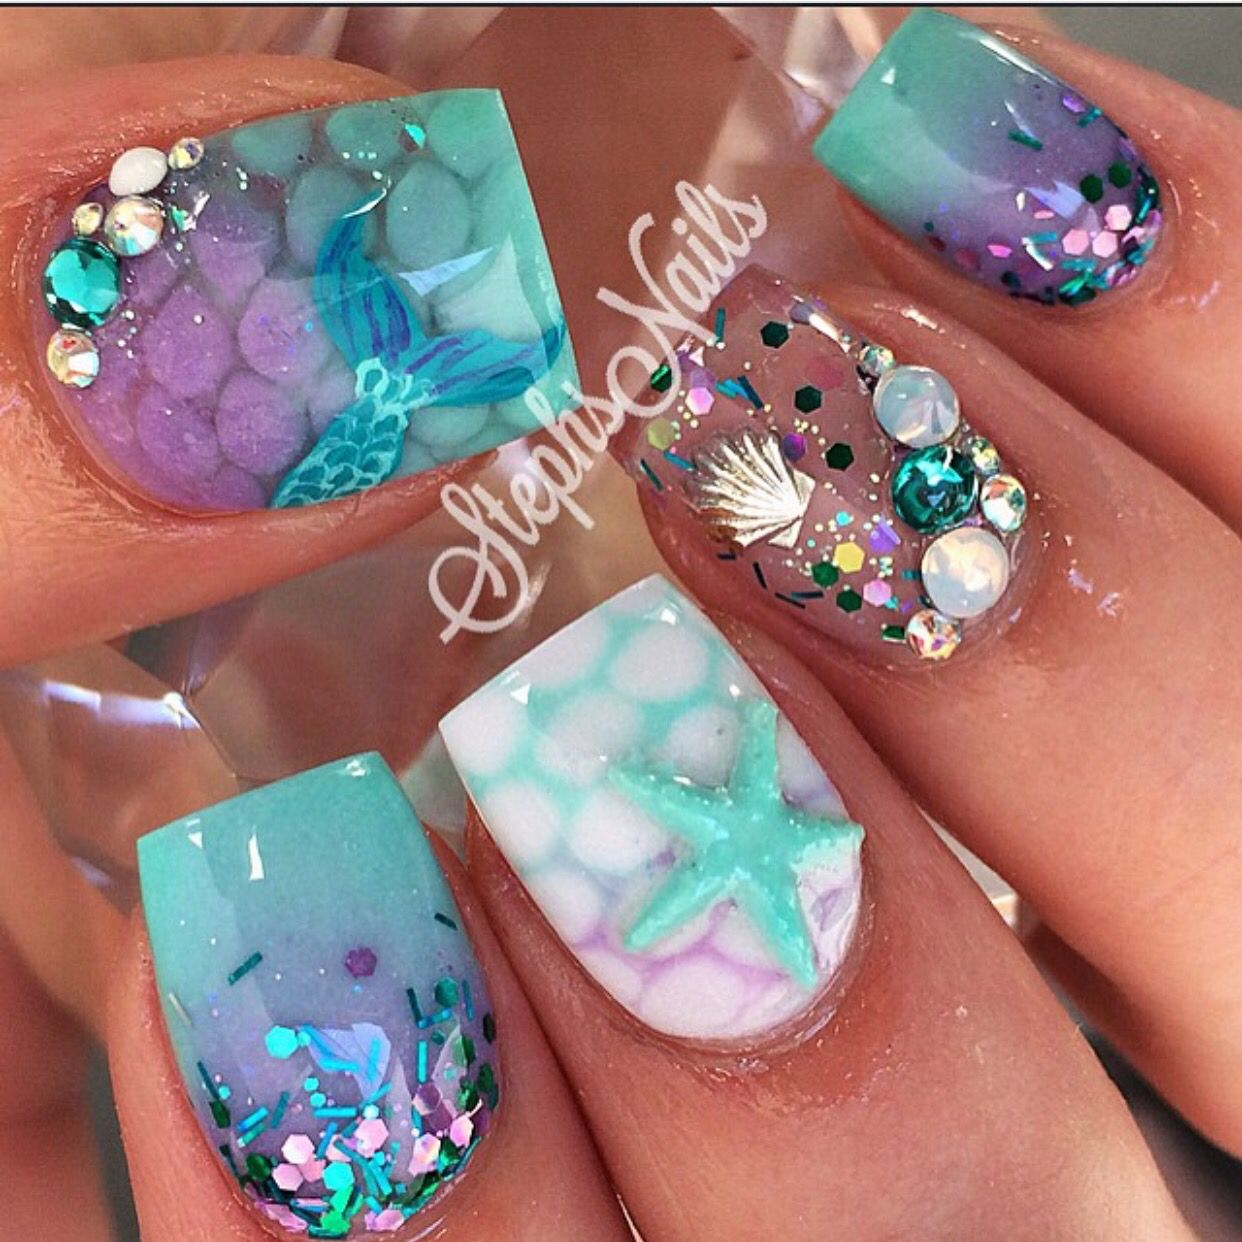 Pin By Kimmy Latisa On Candydandy With Images Mermaid Nails Cute Nails Nail Art Designs